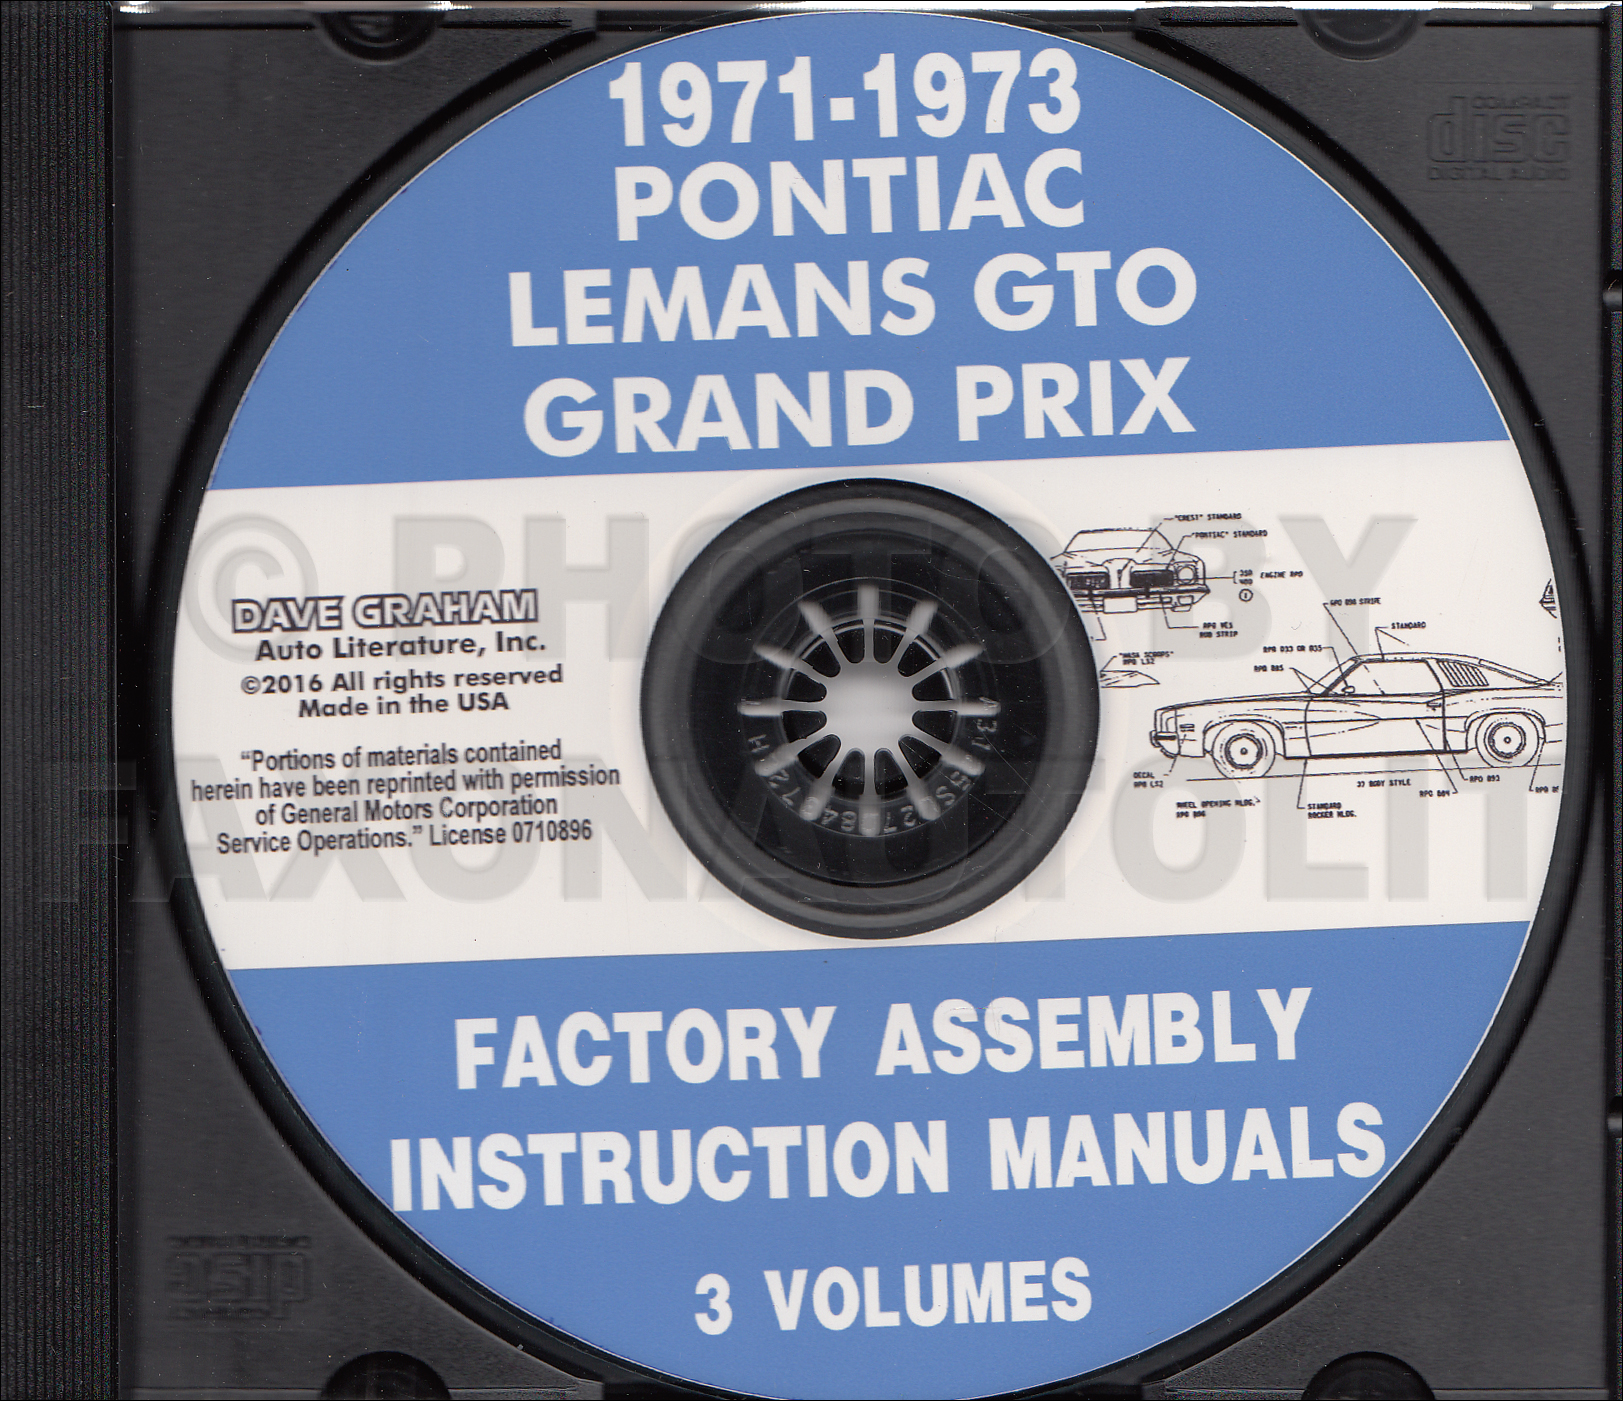 CD-ROM 1971-1973 Pontiac Assembly Manual GTO Grand Prix Am LeMans